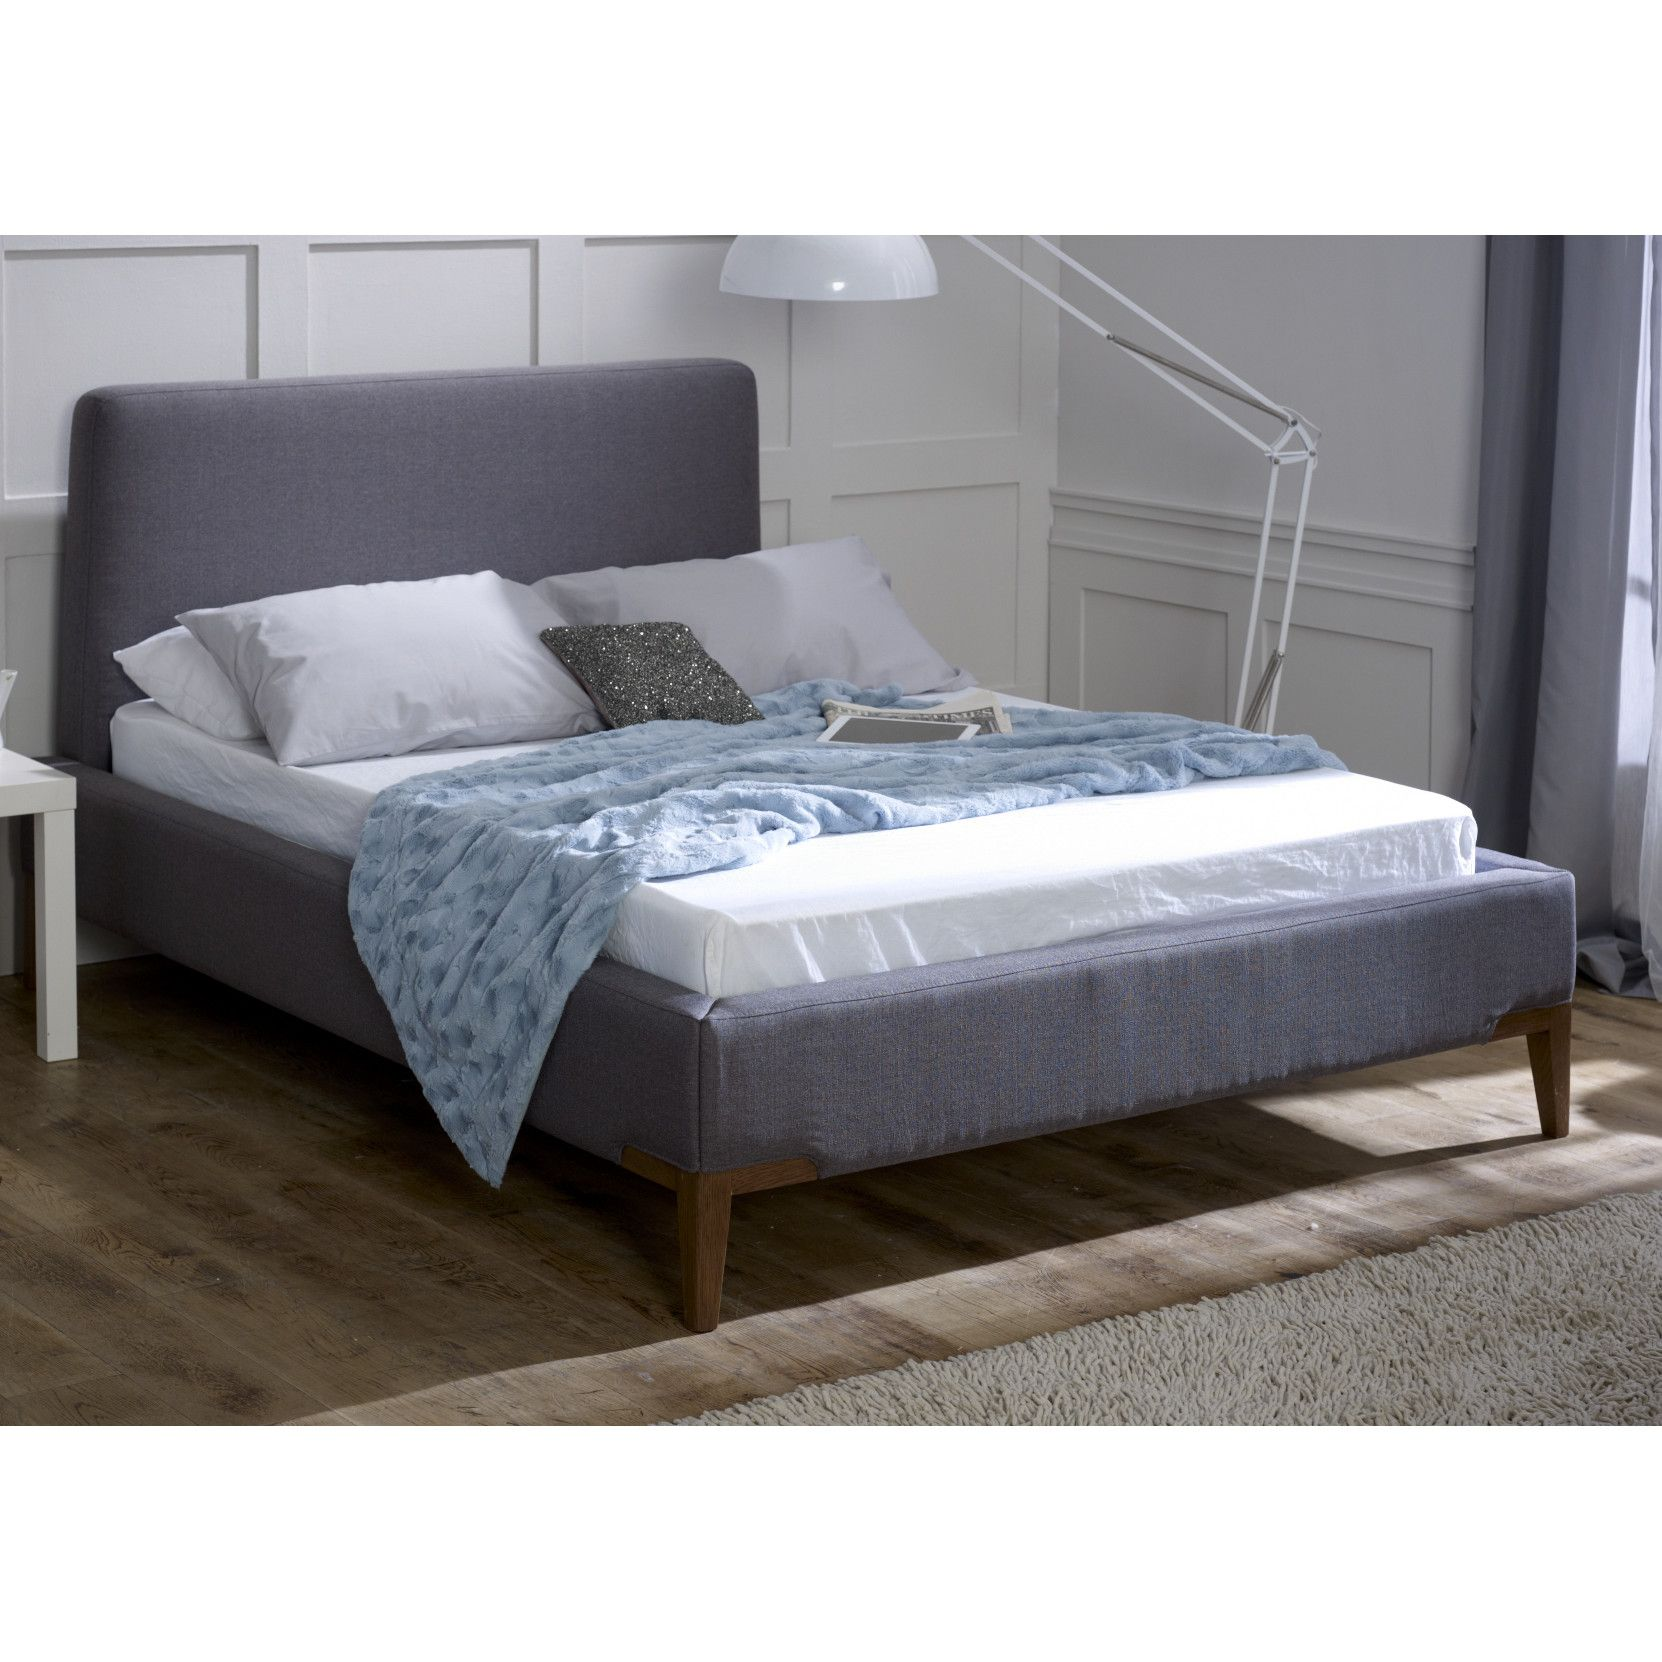 Emerald Upholstered Bed Frame Upholstered bed frame, Bed